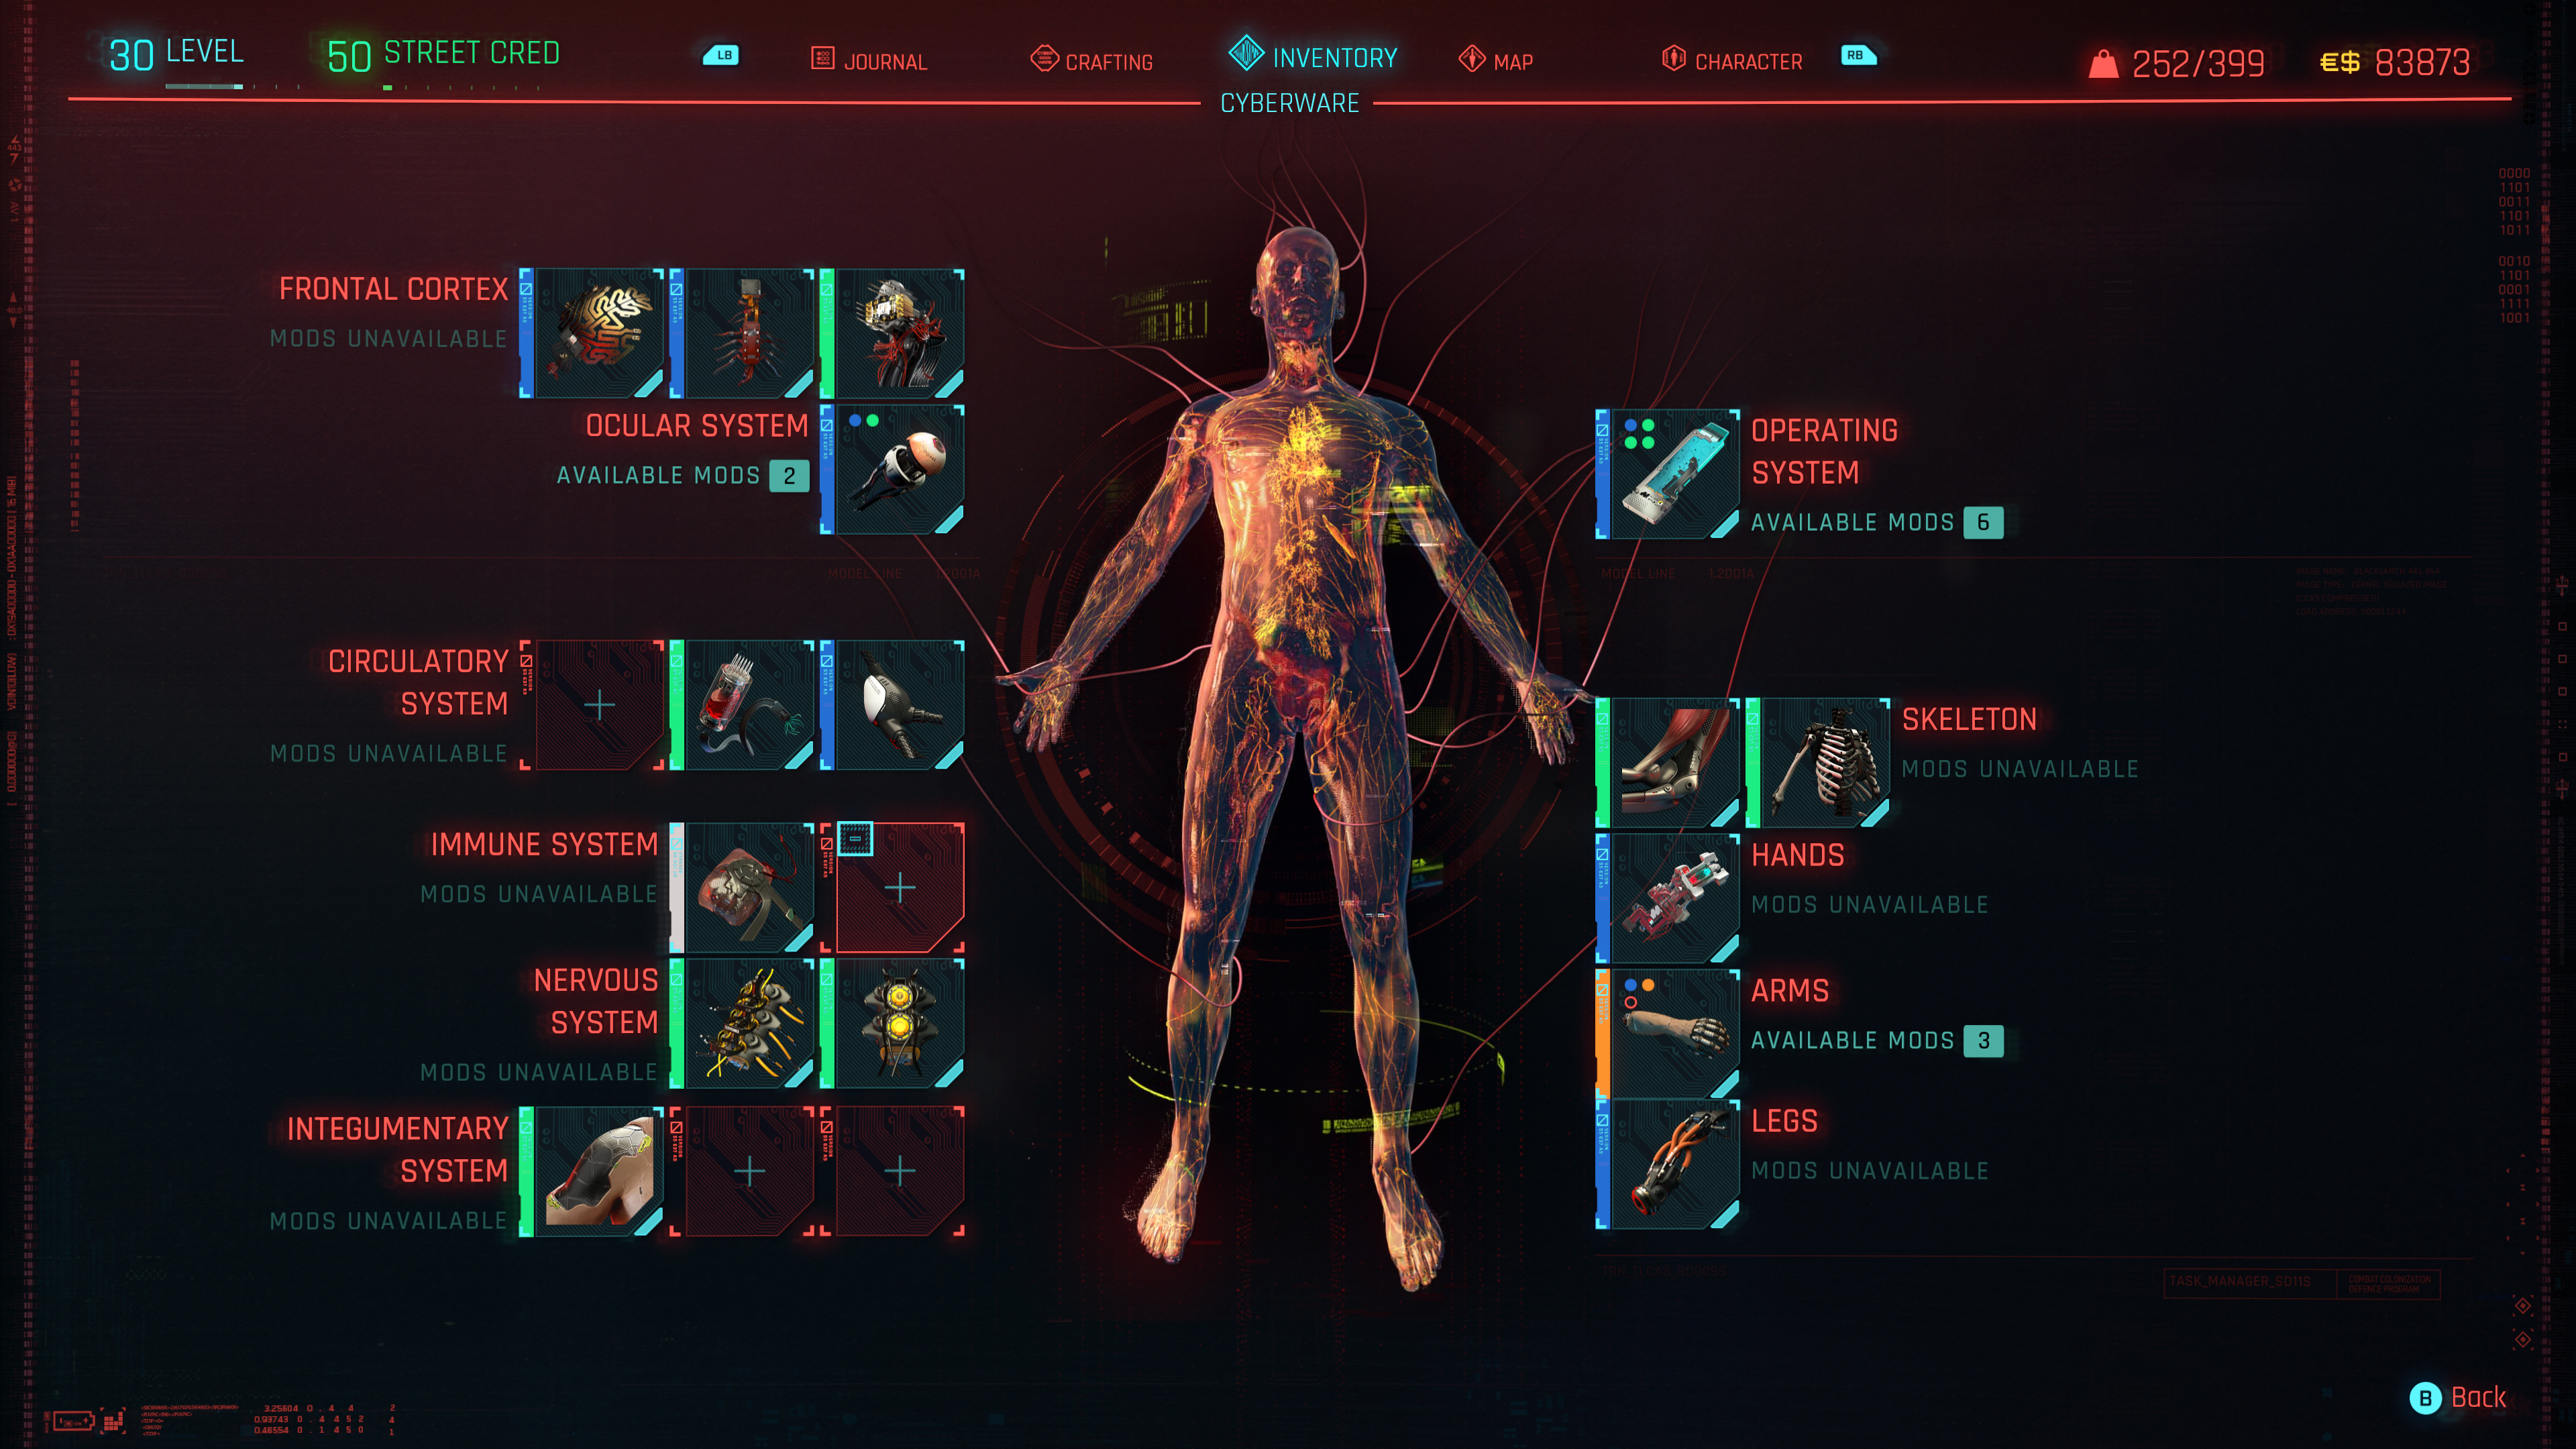 cyberpunk-2077-c-2020-by-cd-projekt-red-14-12-2020-12-32-54-pm.png